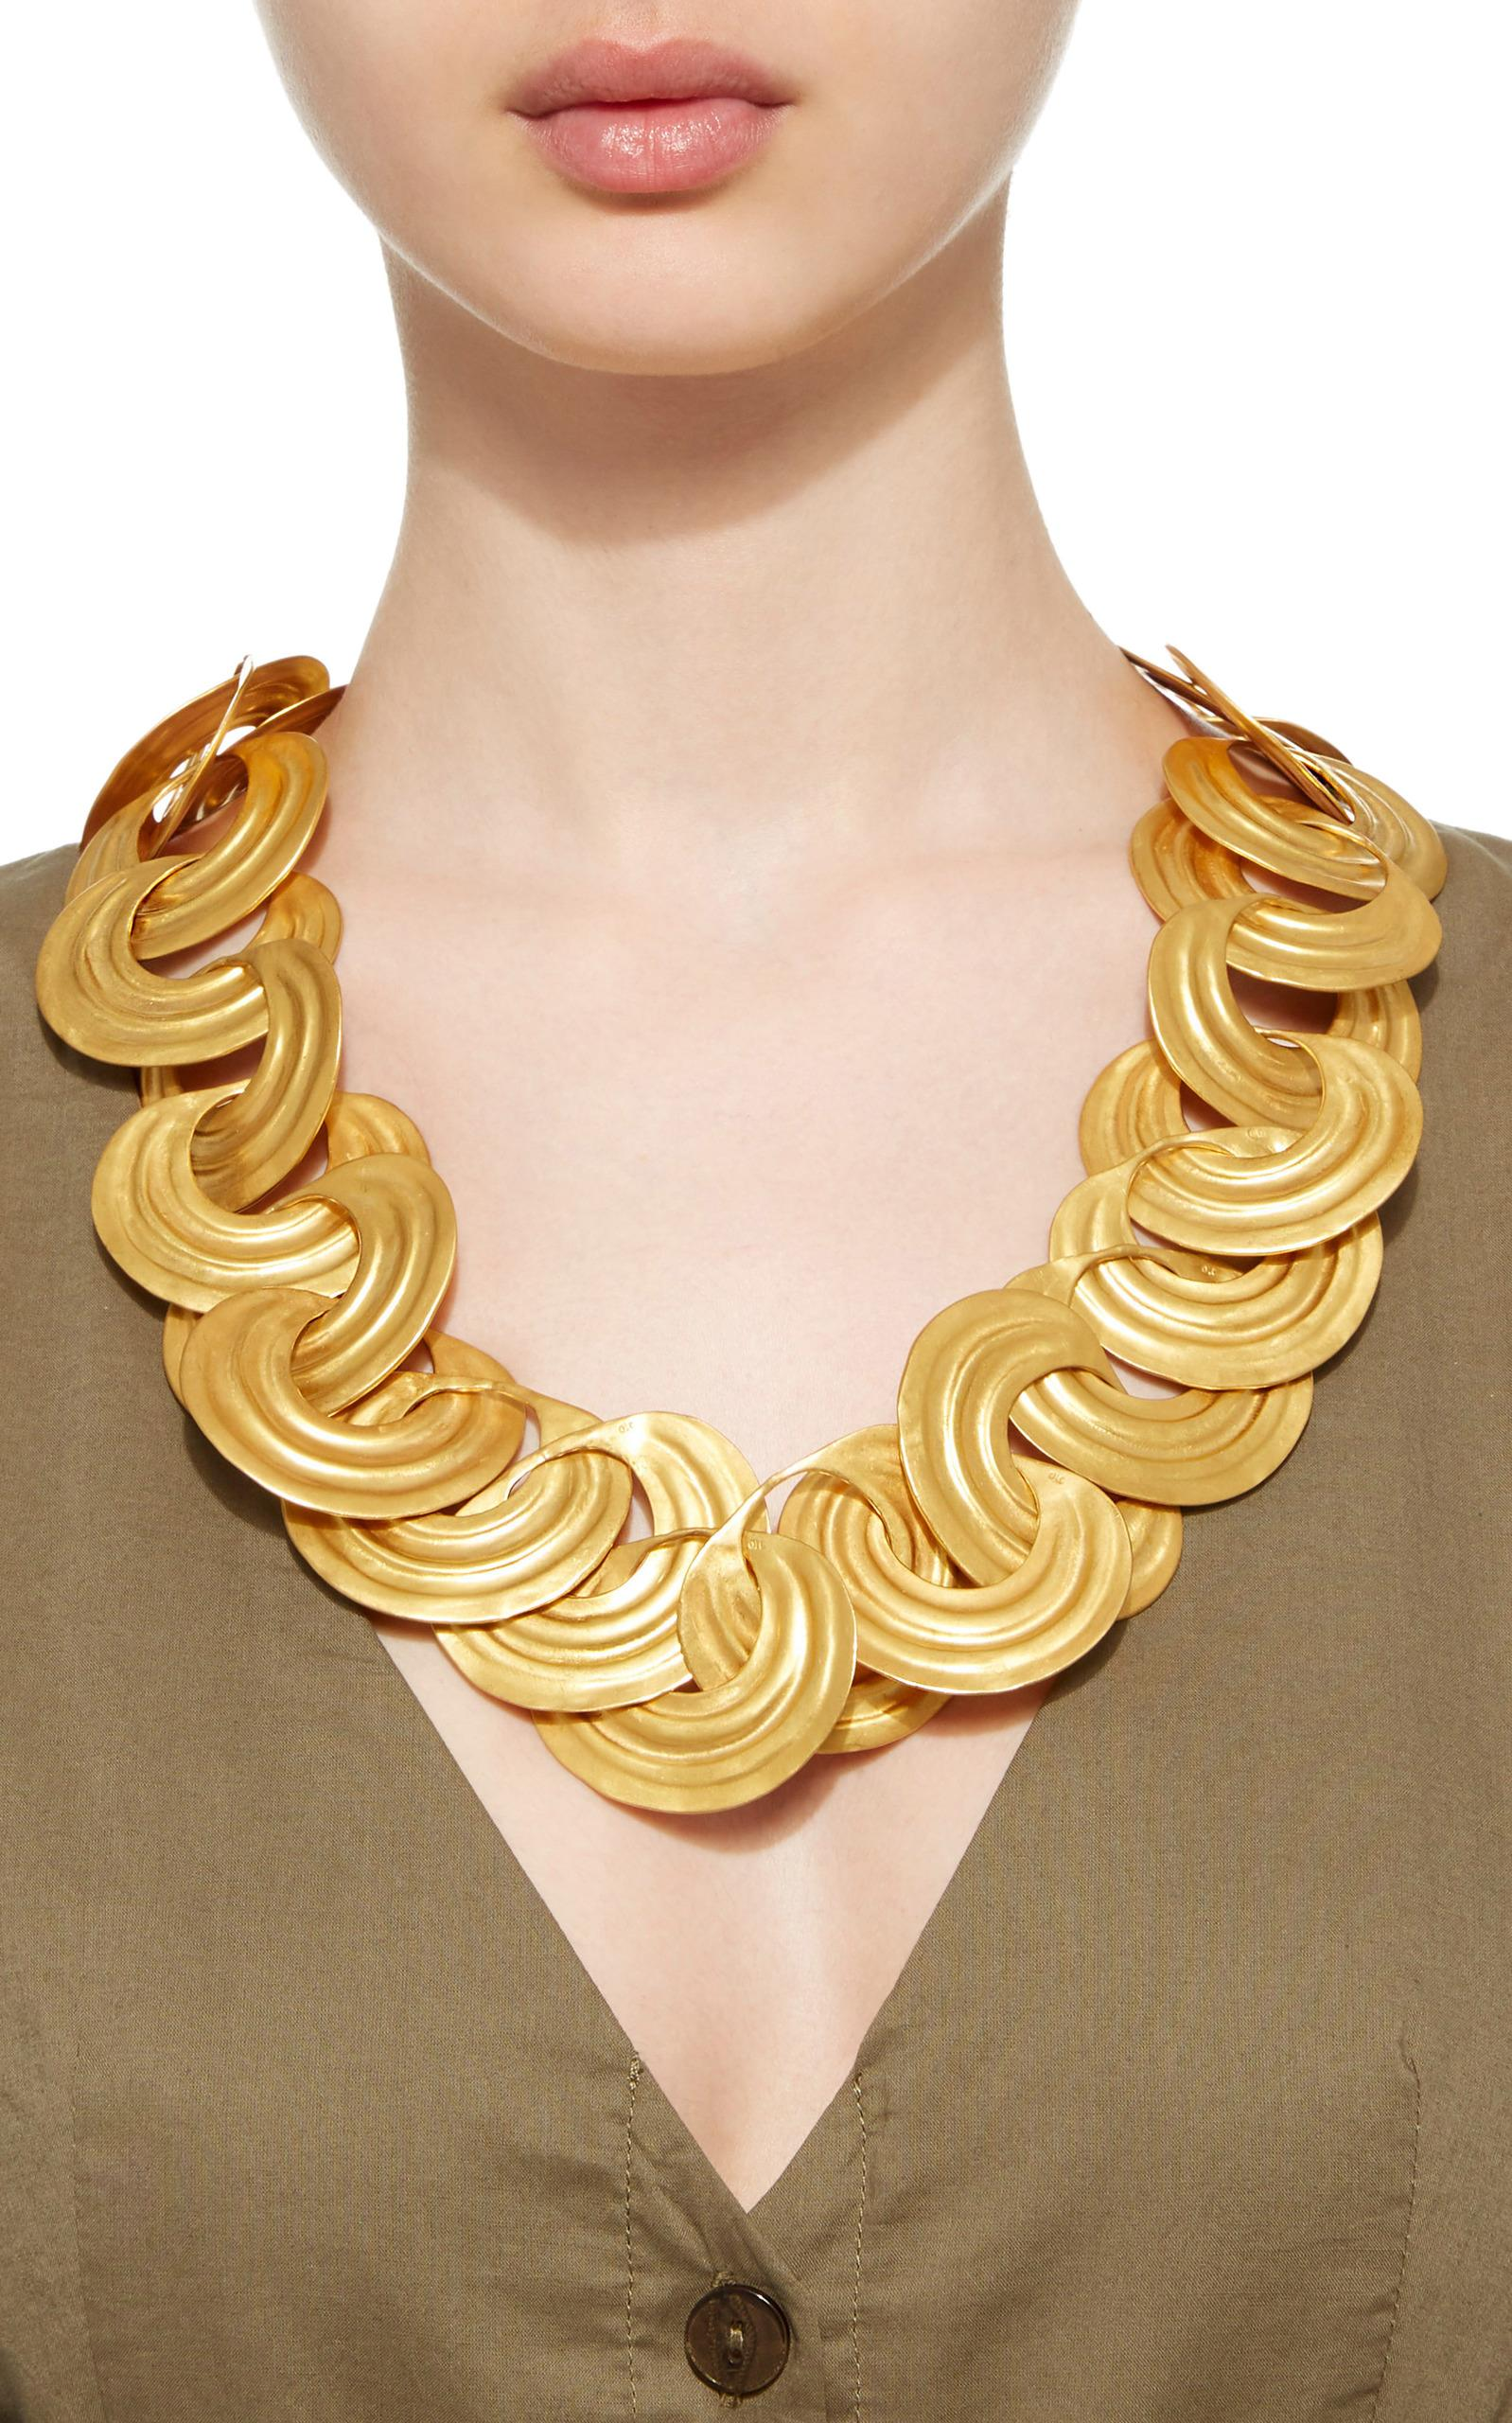 LA Cano Nariguera Xl Necklace in Gold (Metallic)